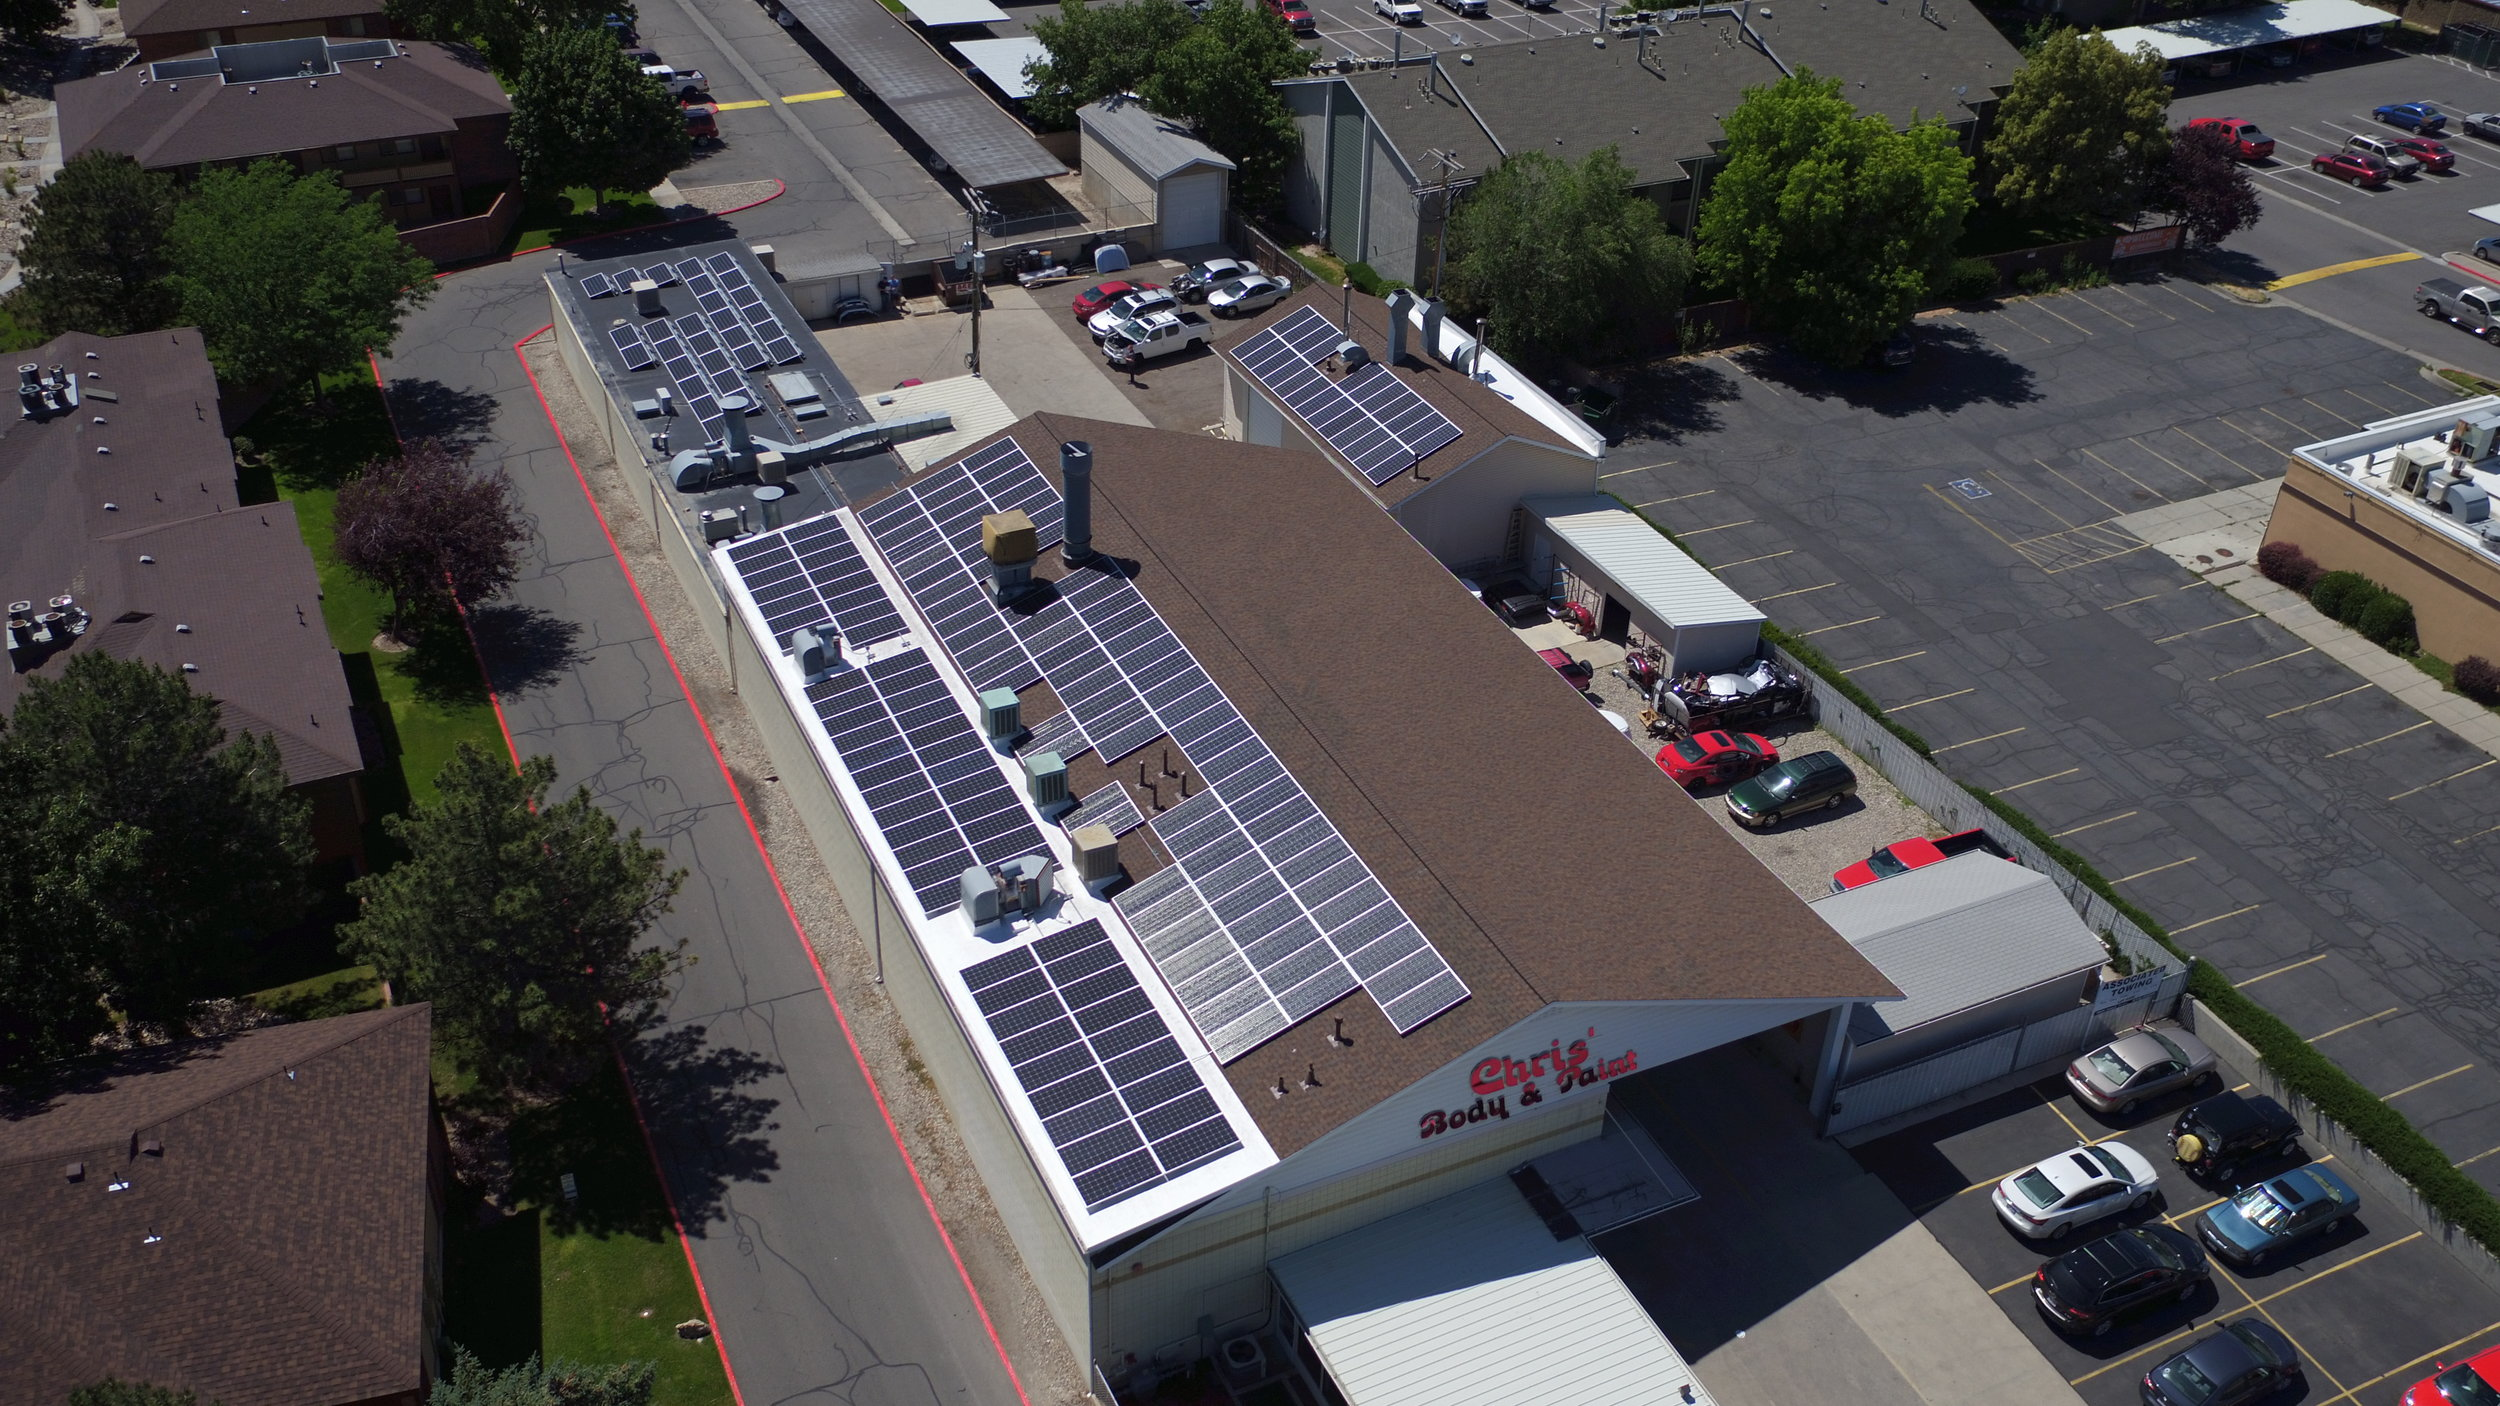 Chris's Body & Paint   188 panels installed 62kW generated per month  $653.07 saved per month